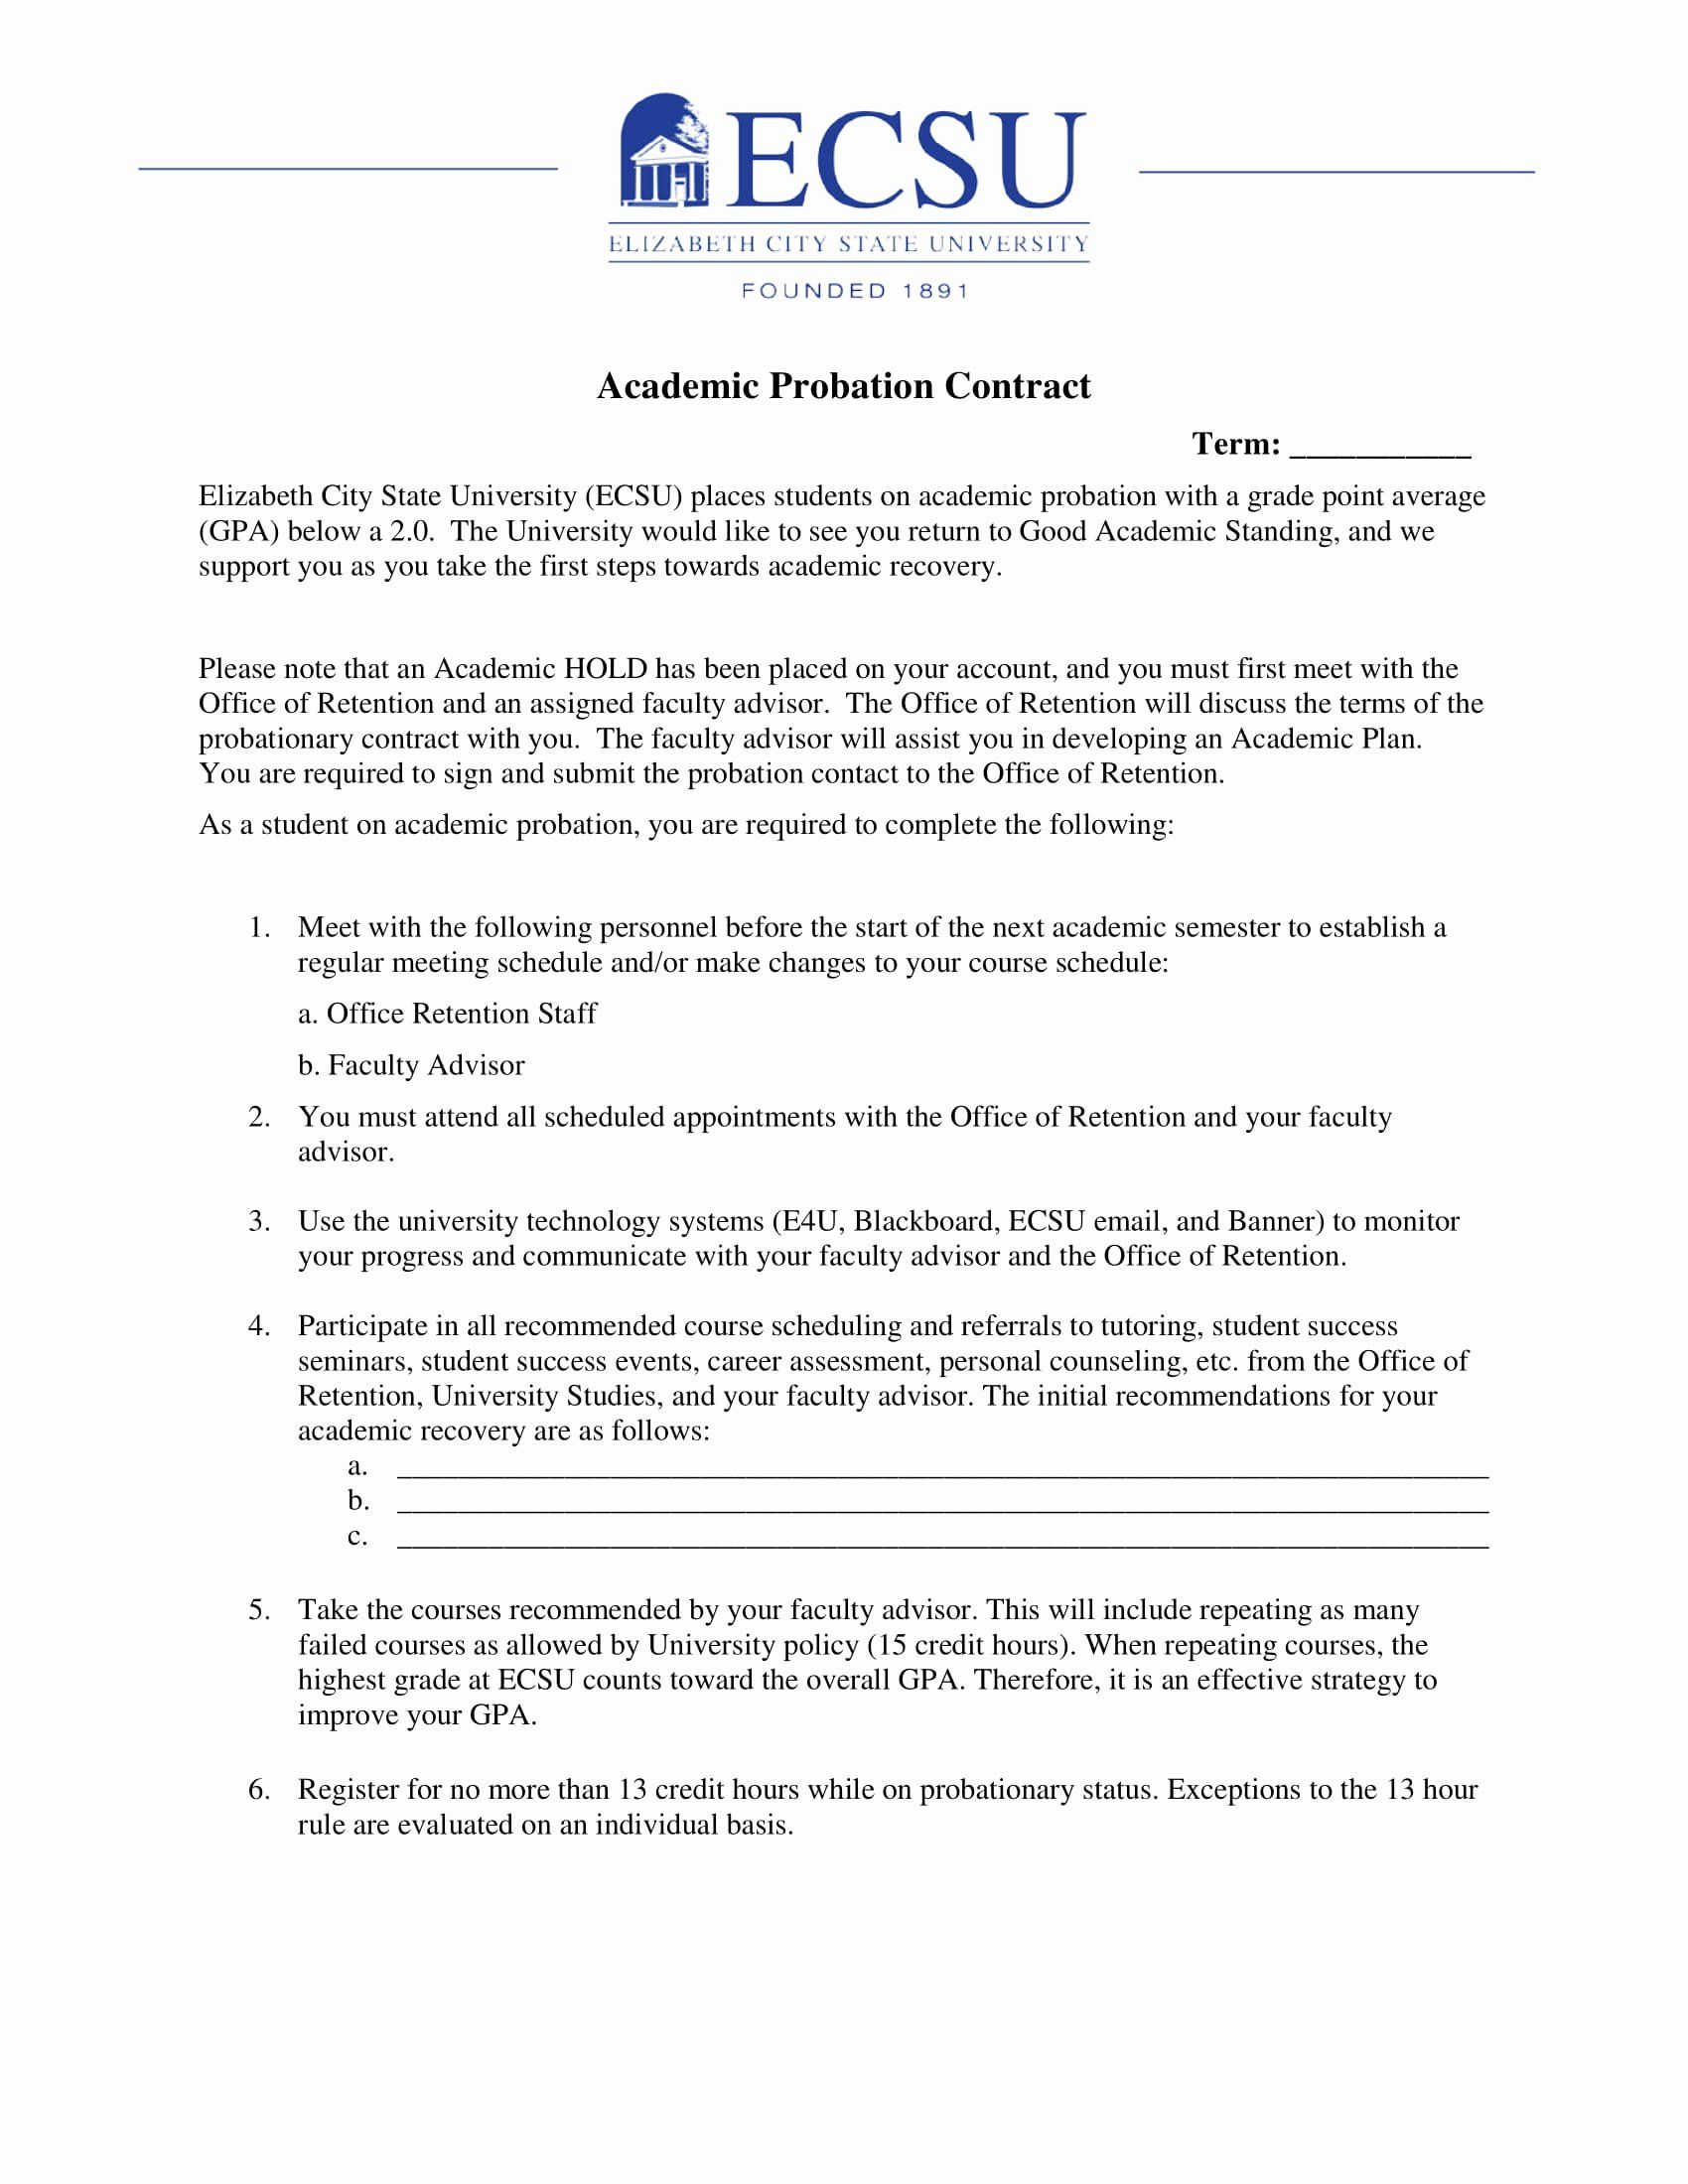 Pin On Examples Contract Templates And Agreements